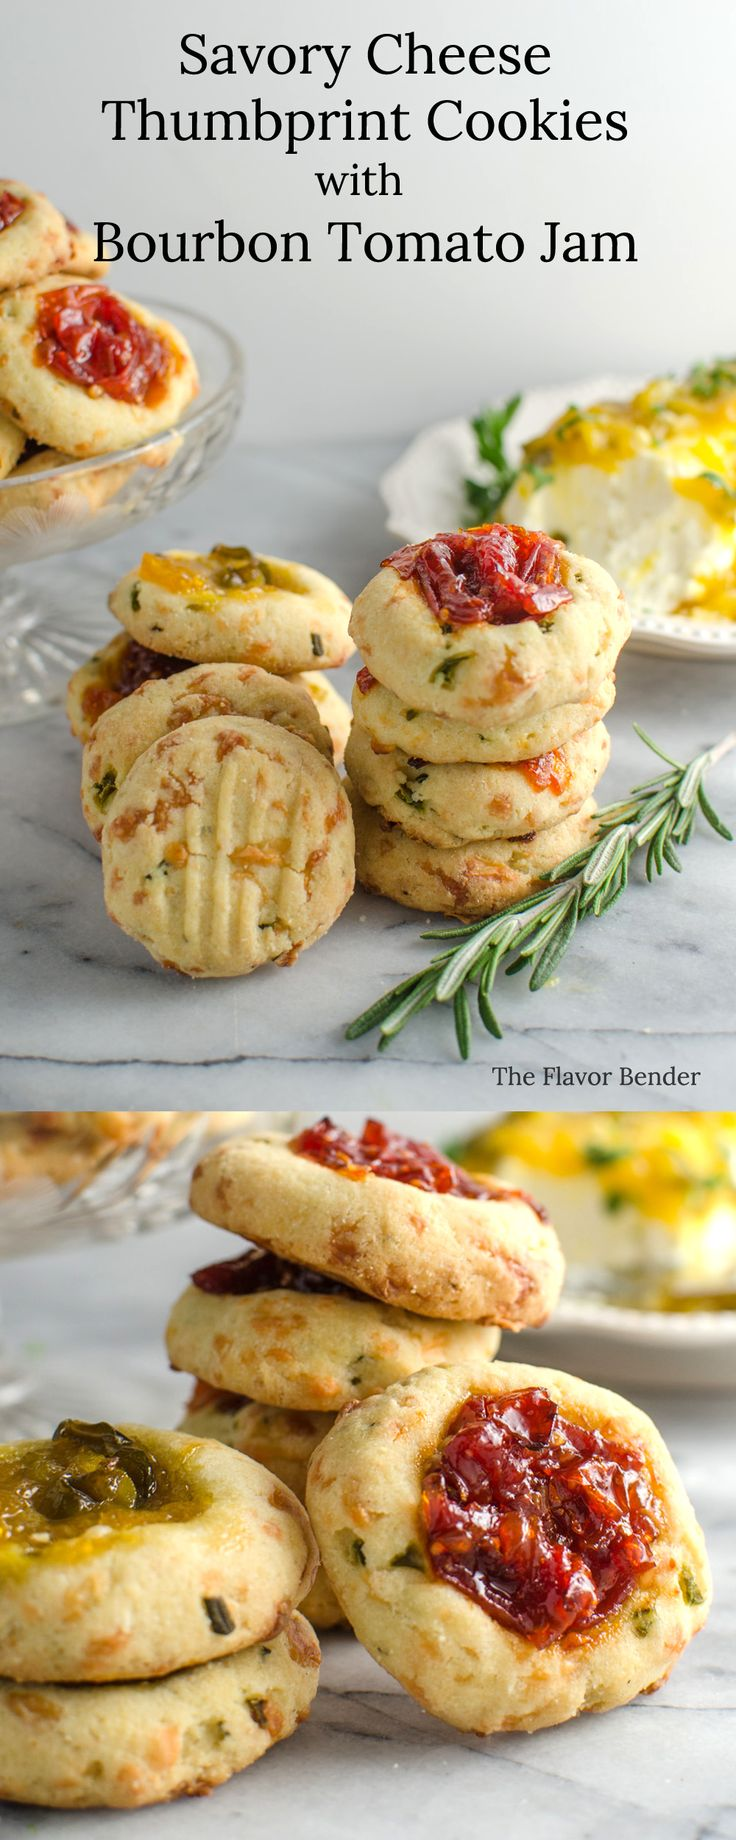 Cheesy Thumbprint Cookies with Bourbon Tomato Jam ( Savory Cookies )